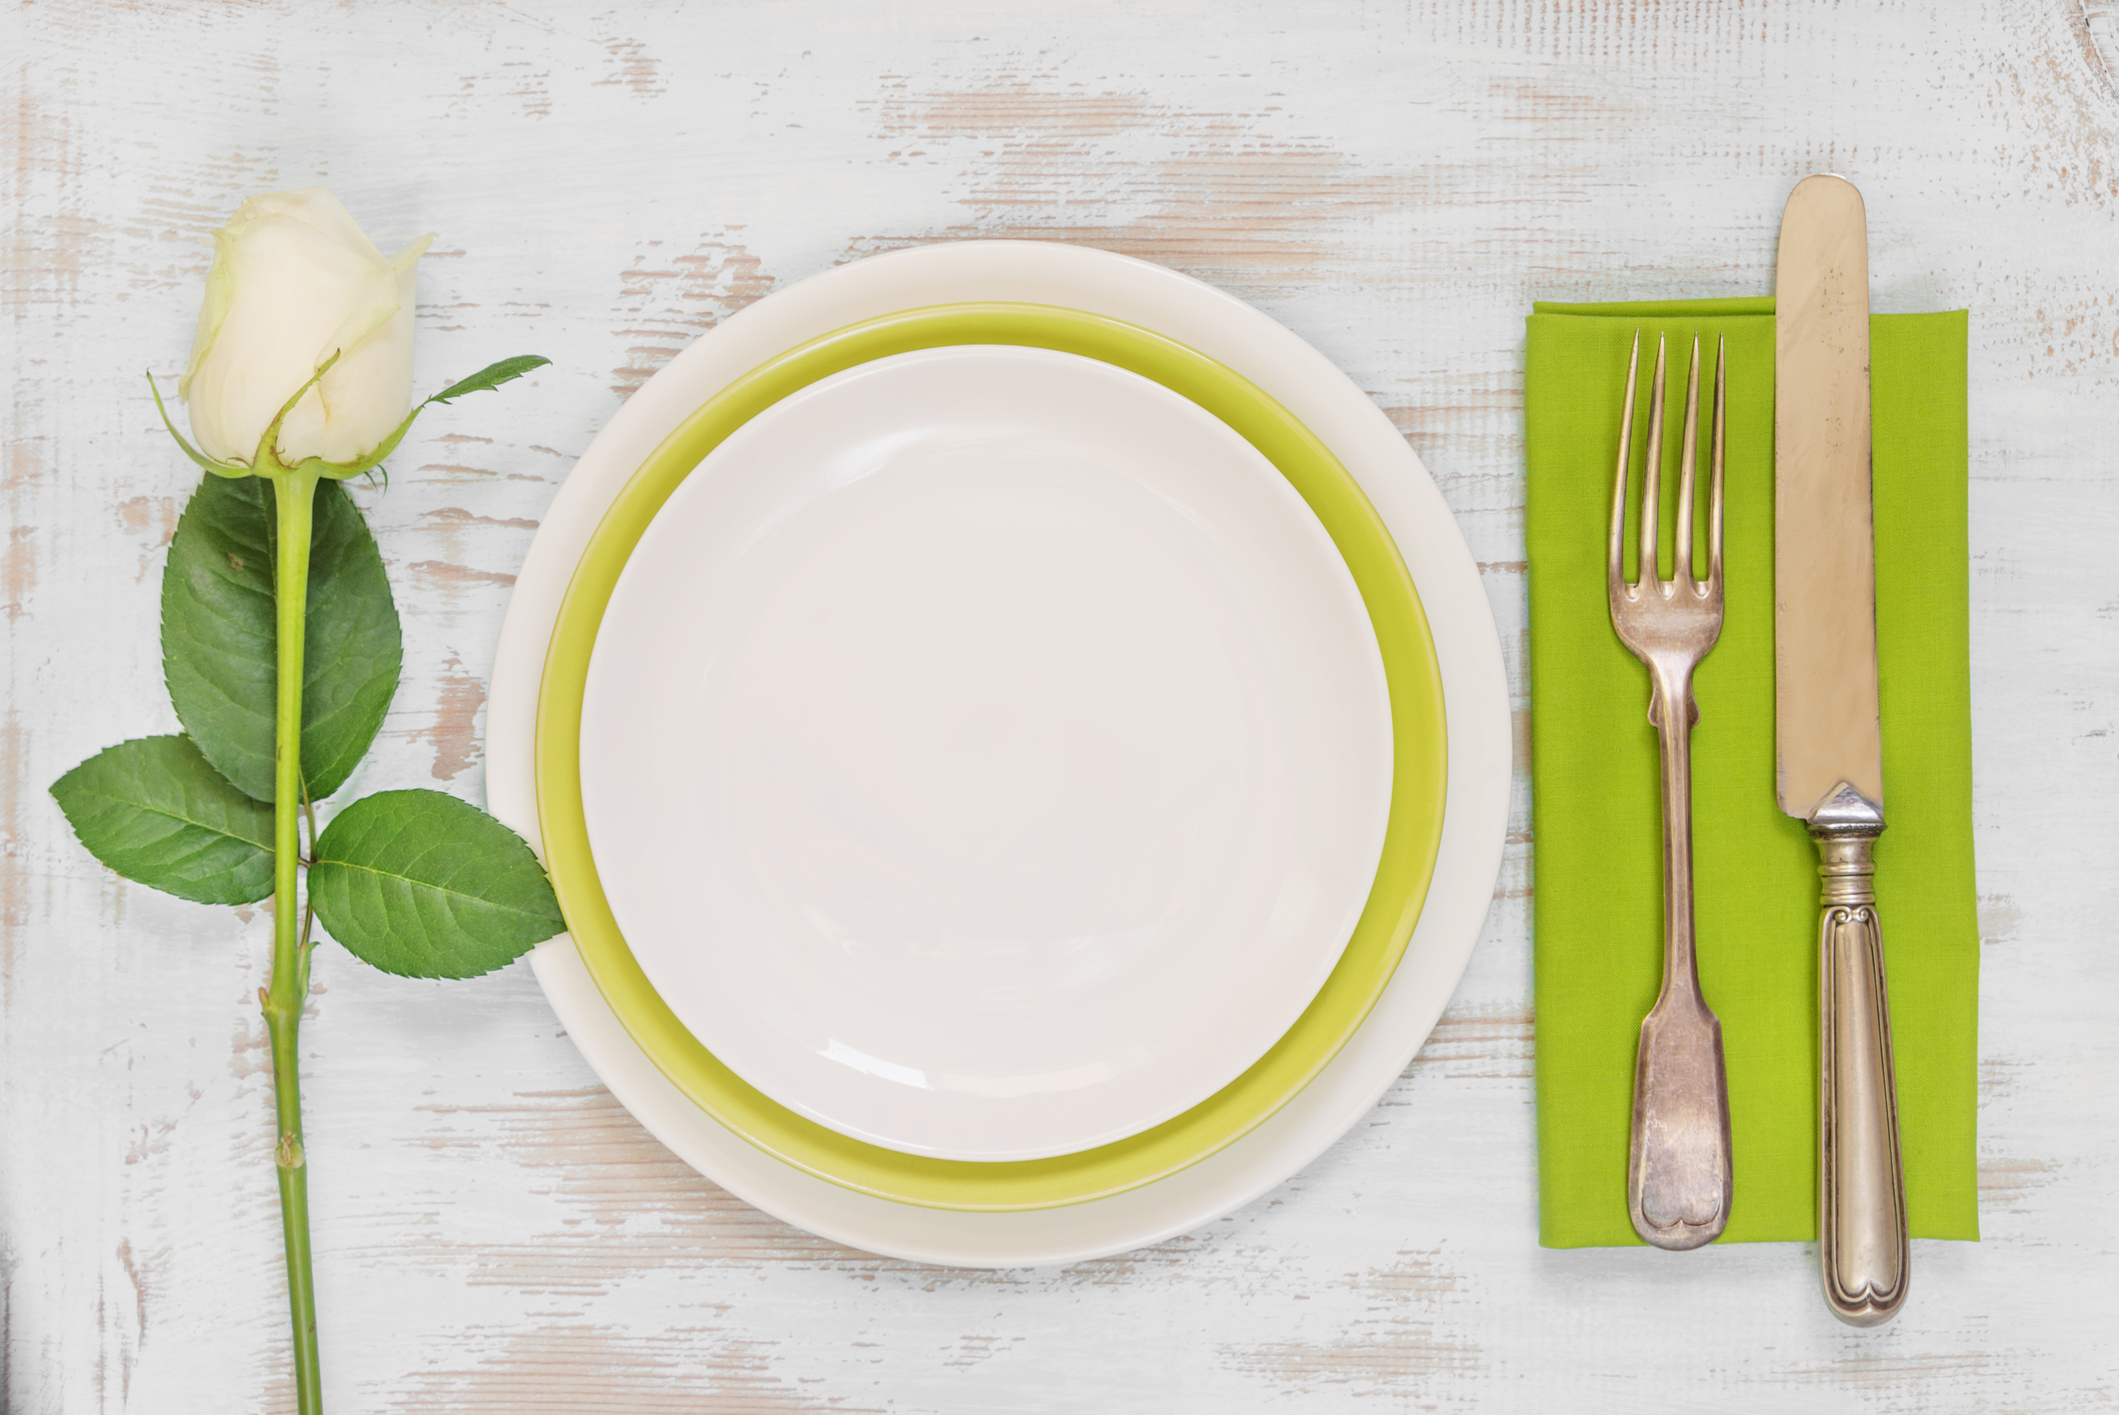 Table setting for a St. Patrick's Day dinner party